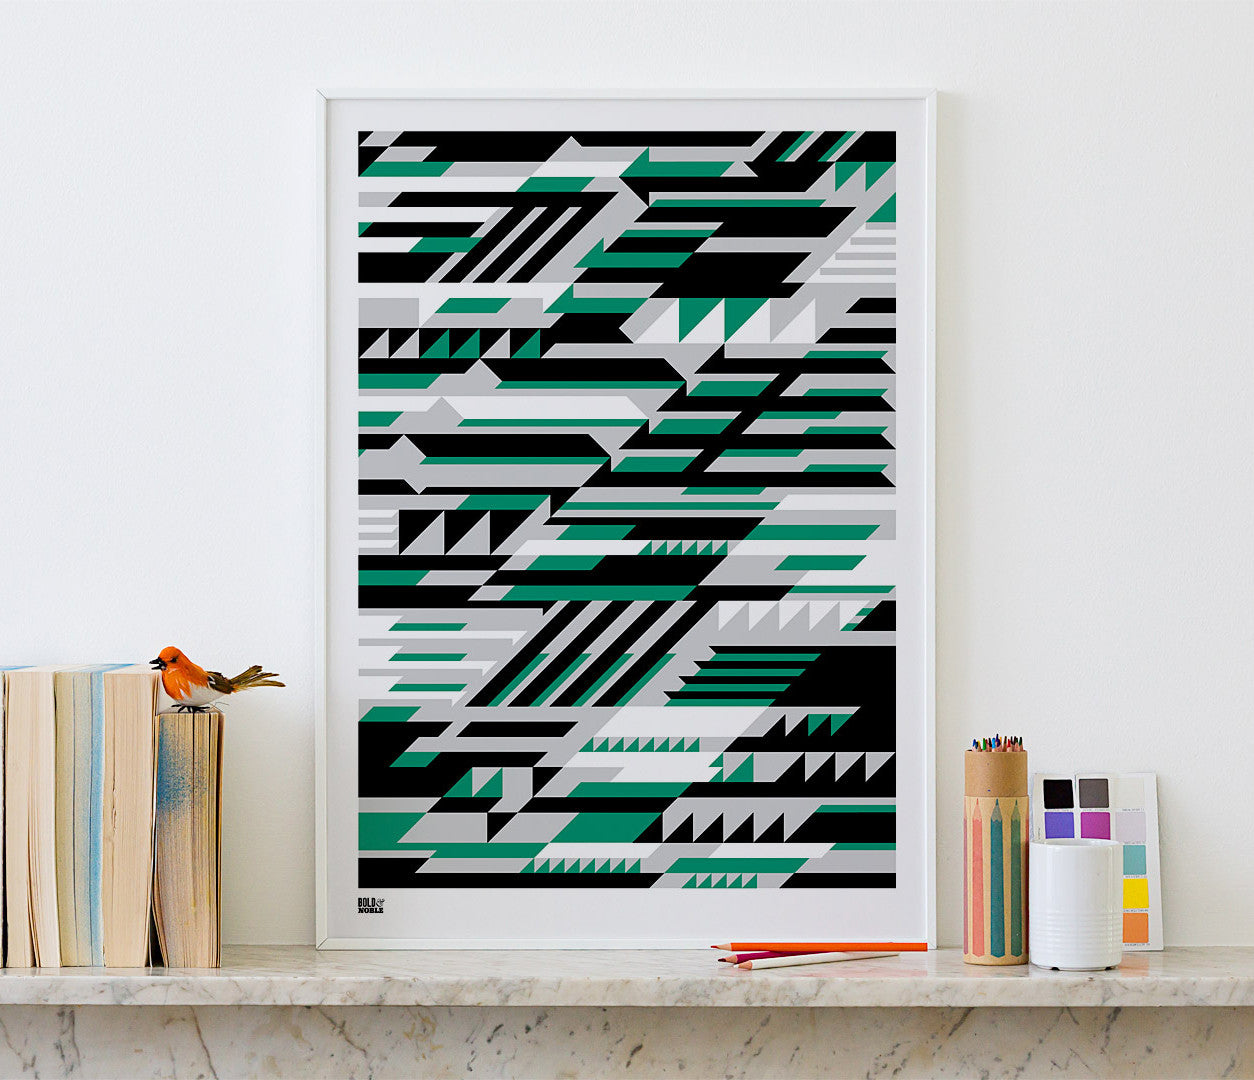 Wall Art ideas: Economical Screen Prints, Faster Geometric Screen Print in green and grey